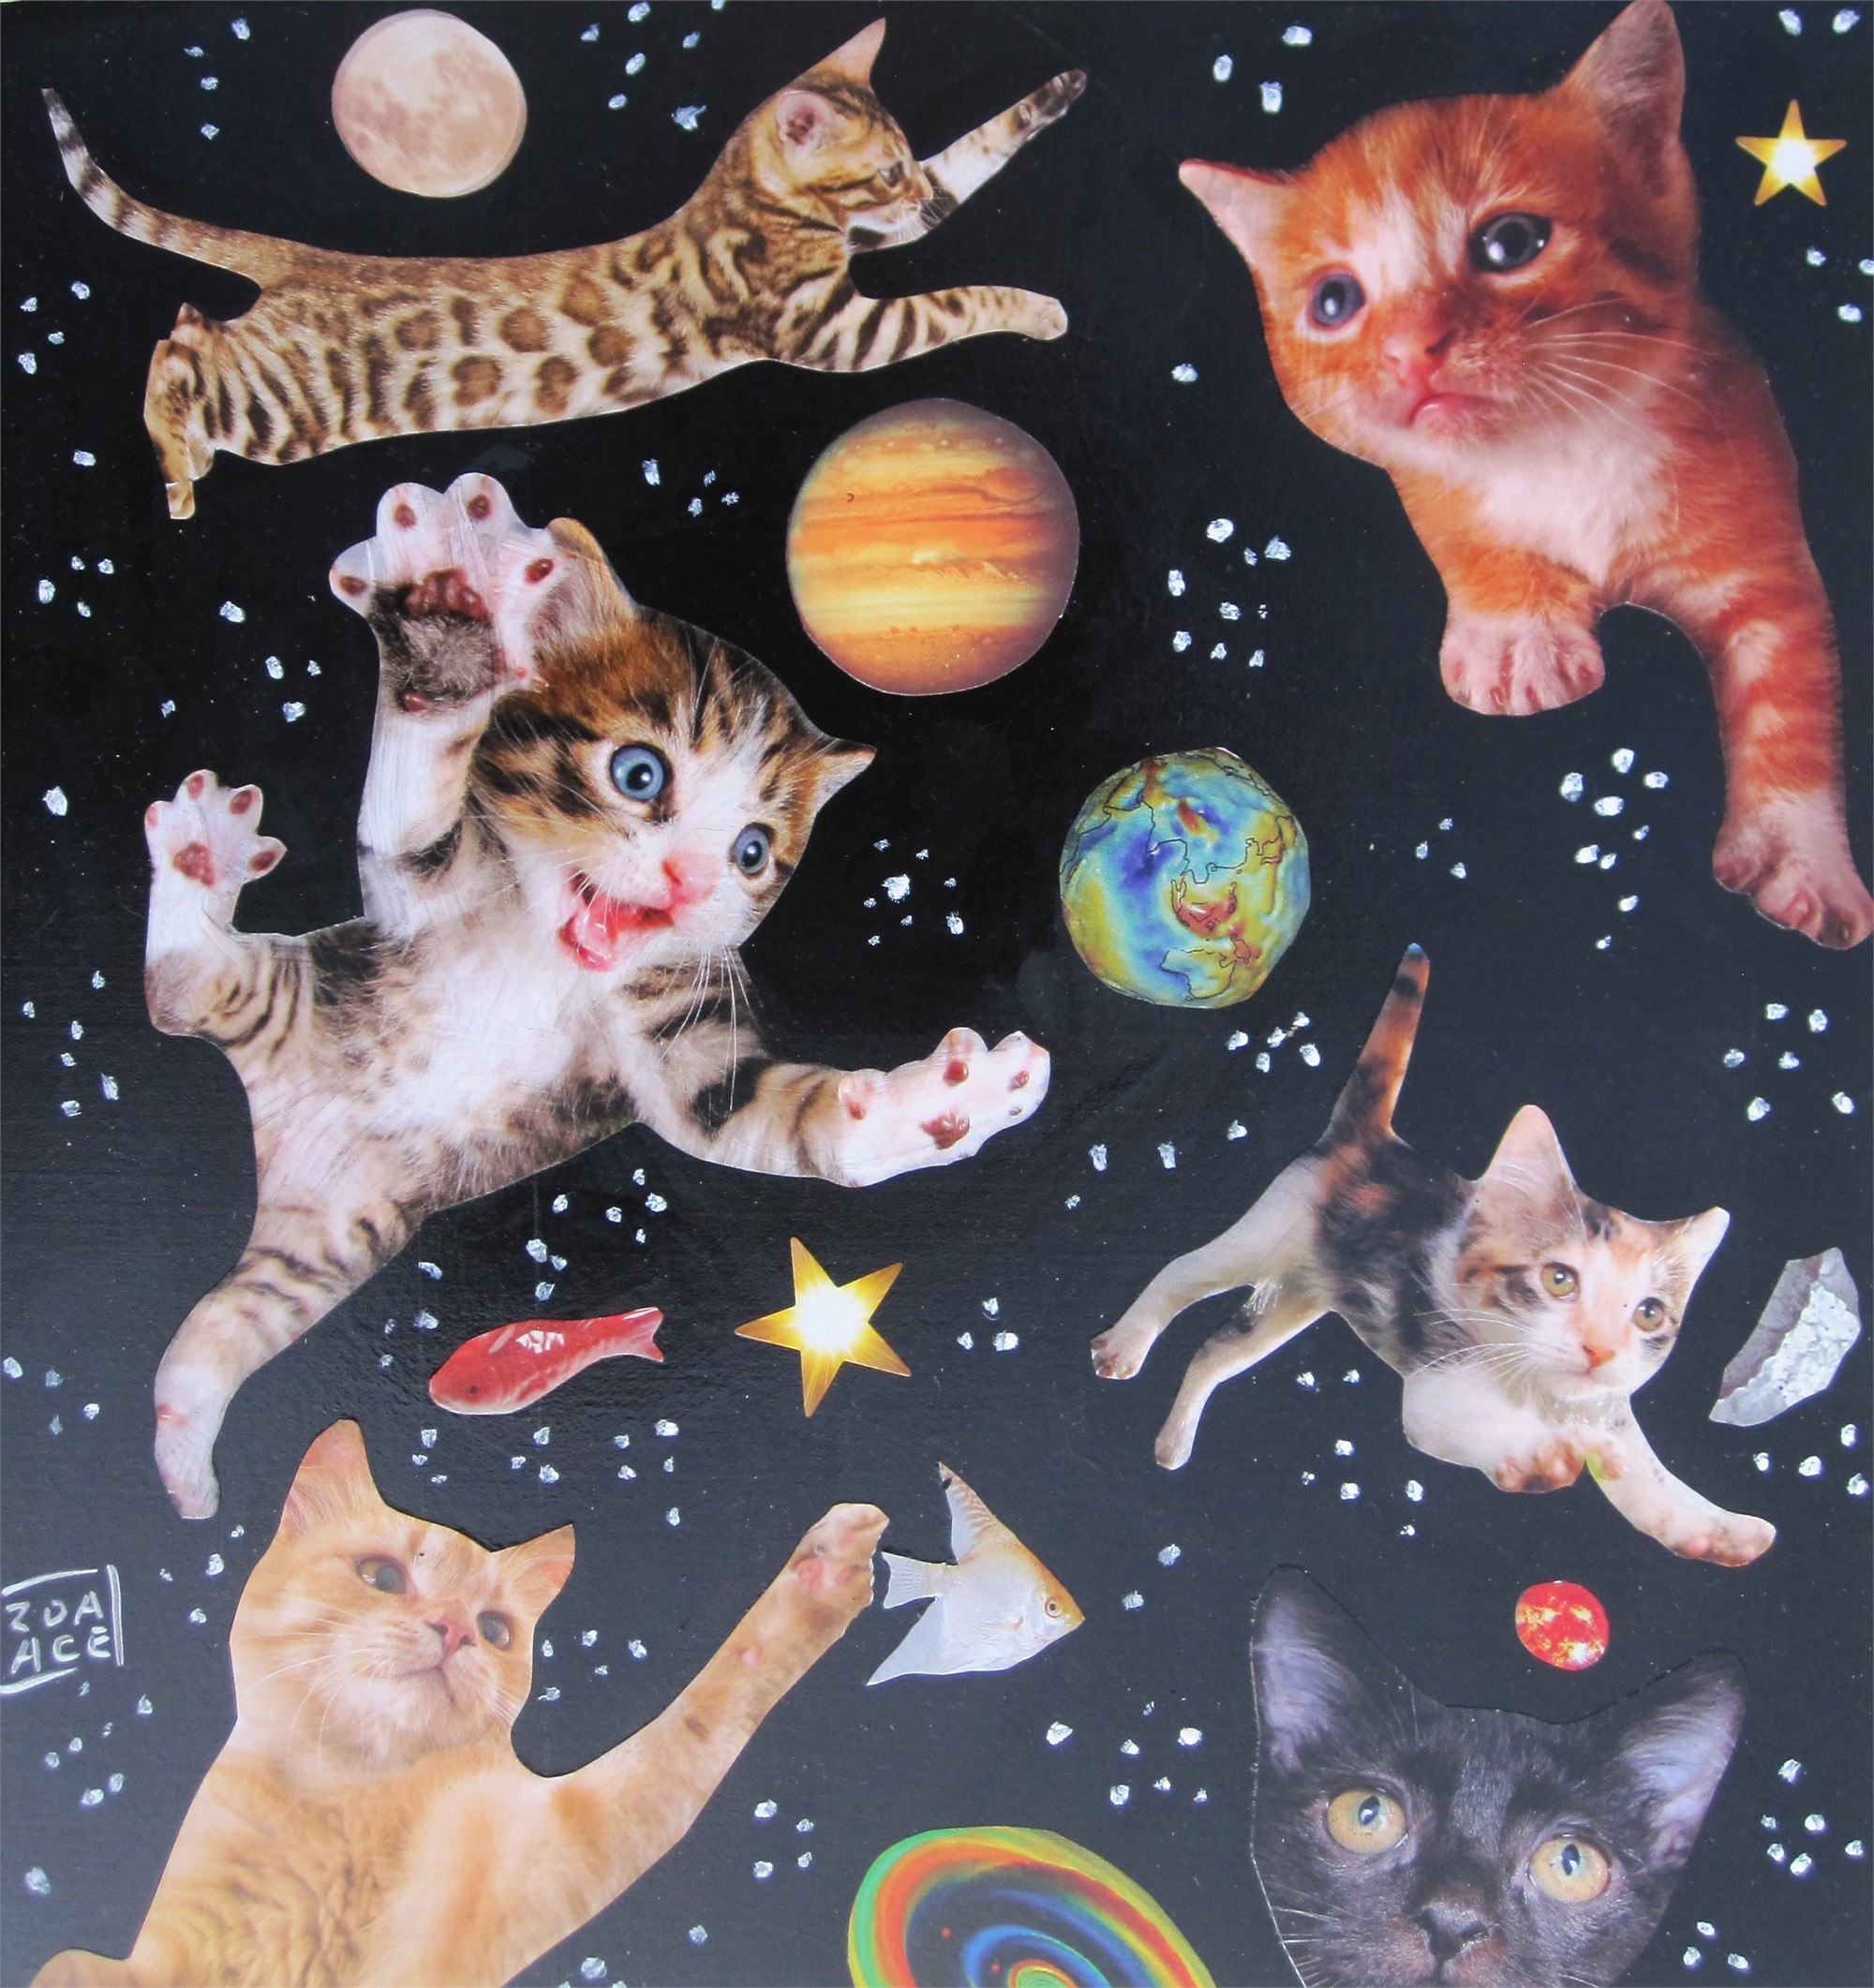 Space Cats #3 by Zoa Ace